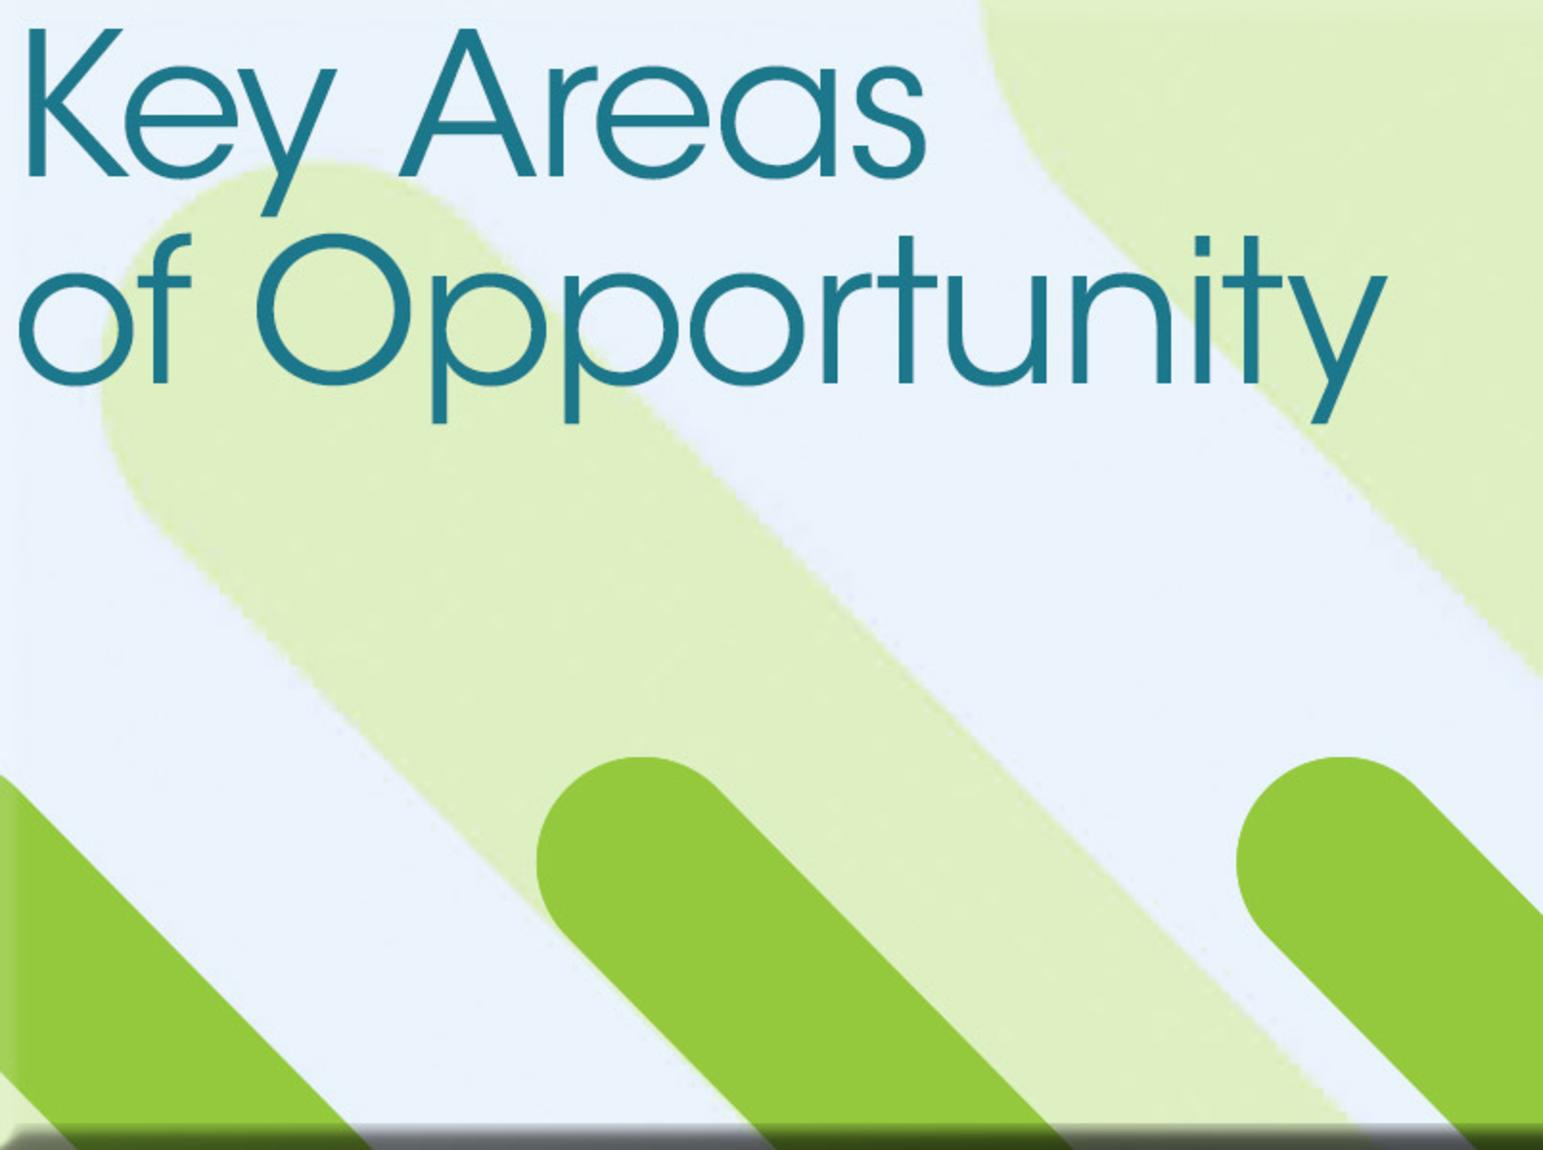 Key Areas of Opportunity